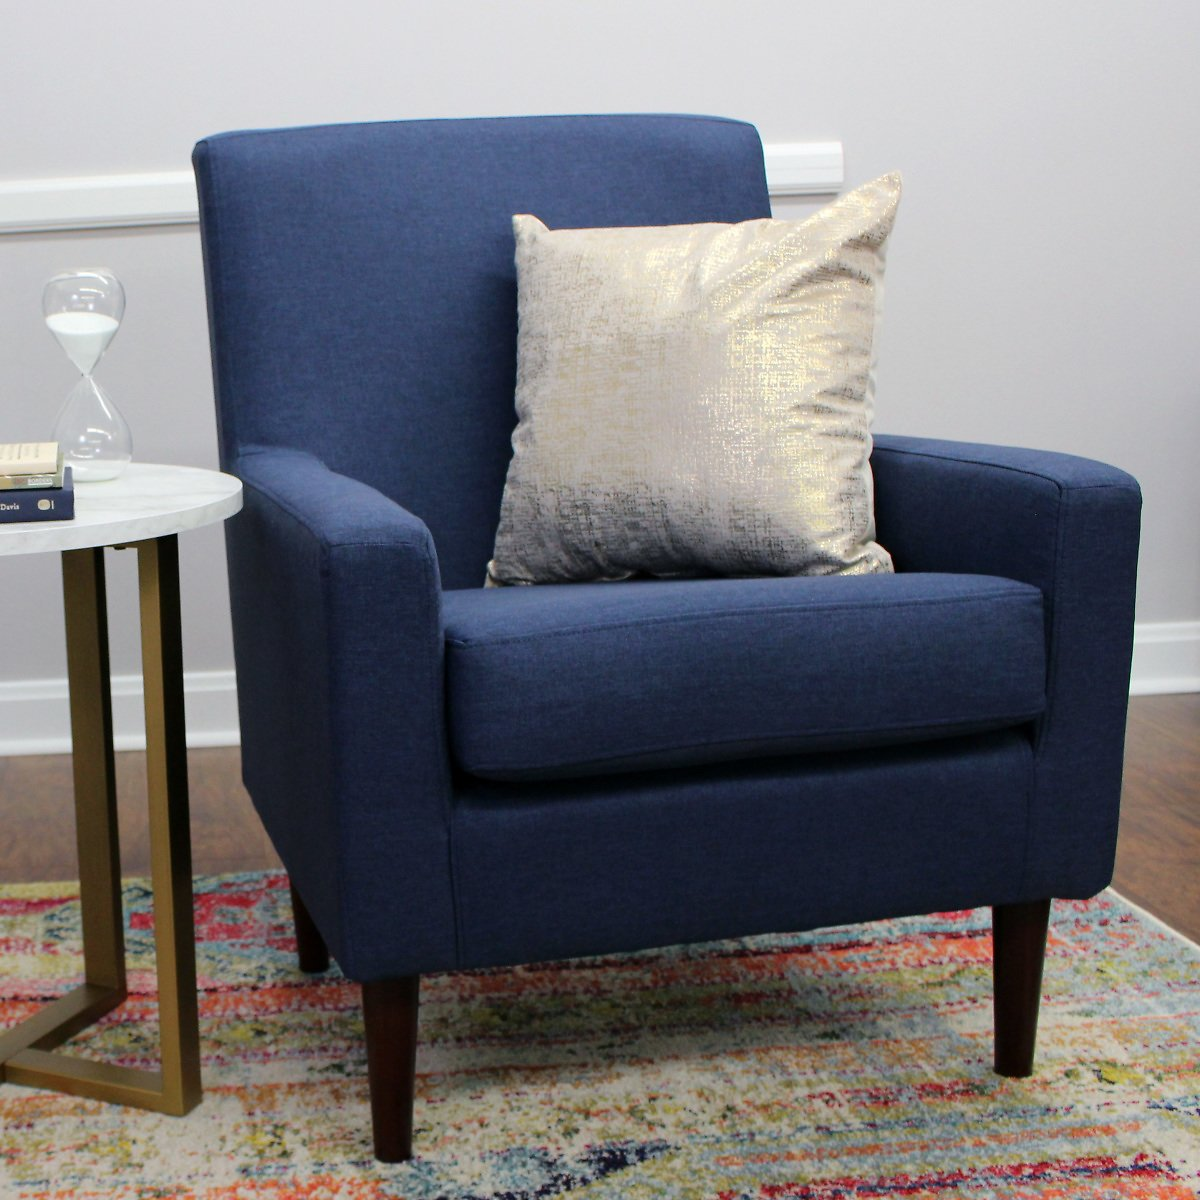 Mainstays Kinley Lounge Chair